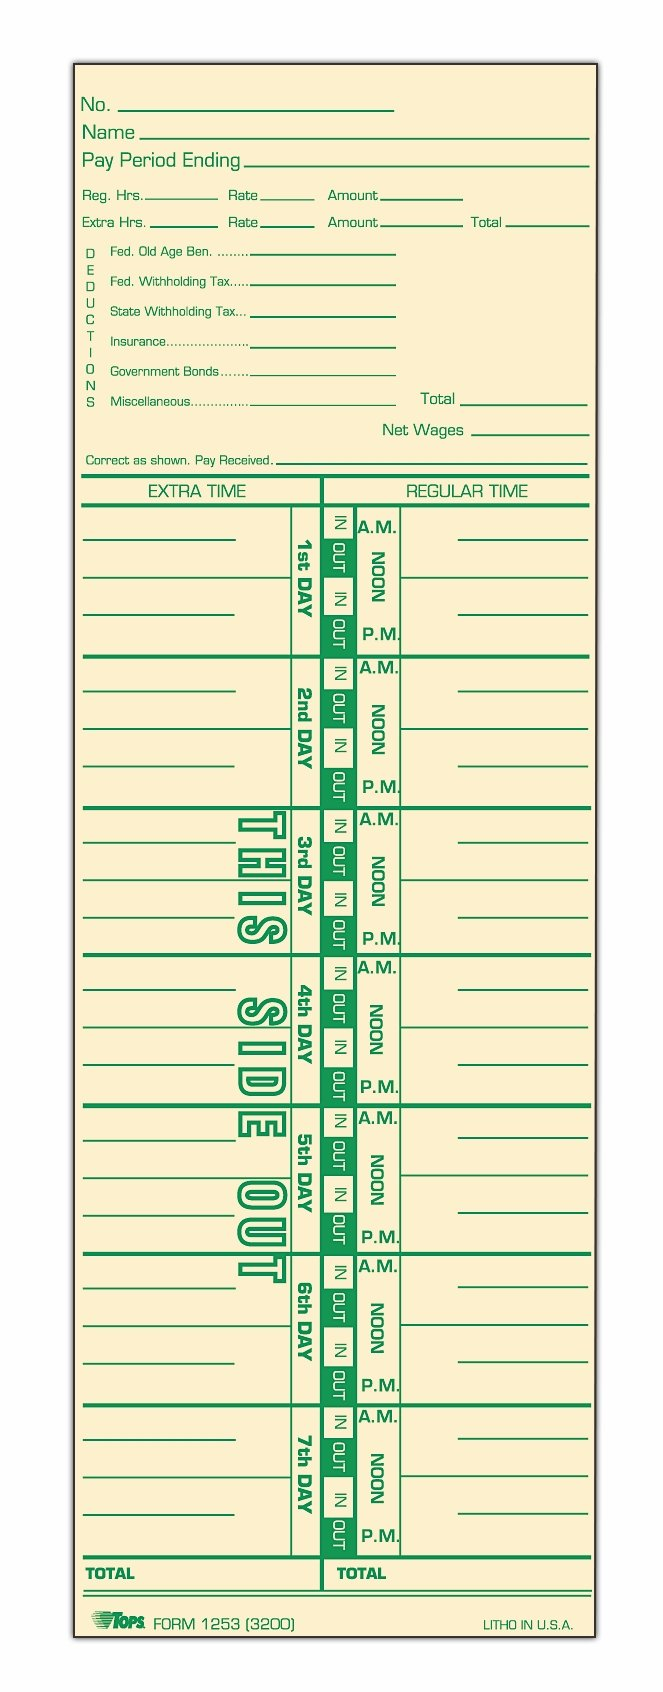 TOPS Time Cards, Weekly, 1-Sided, Numbered Days, 3-1/2'' x 10-1/2'', Manila, Green Print, 500-Count (1253)